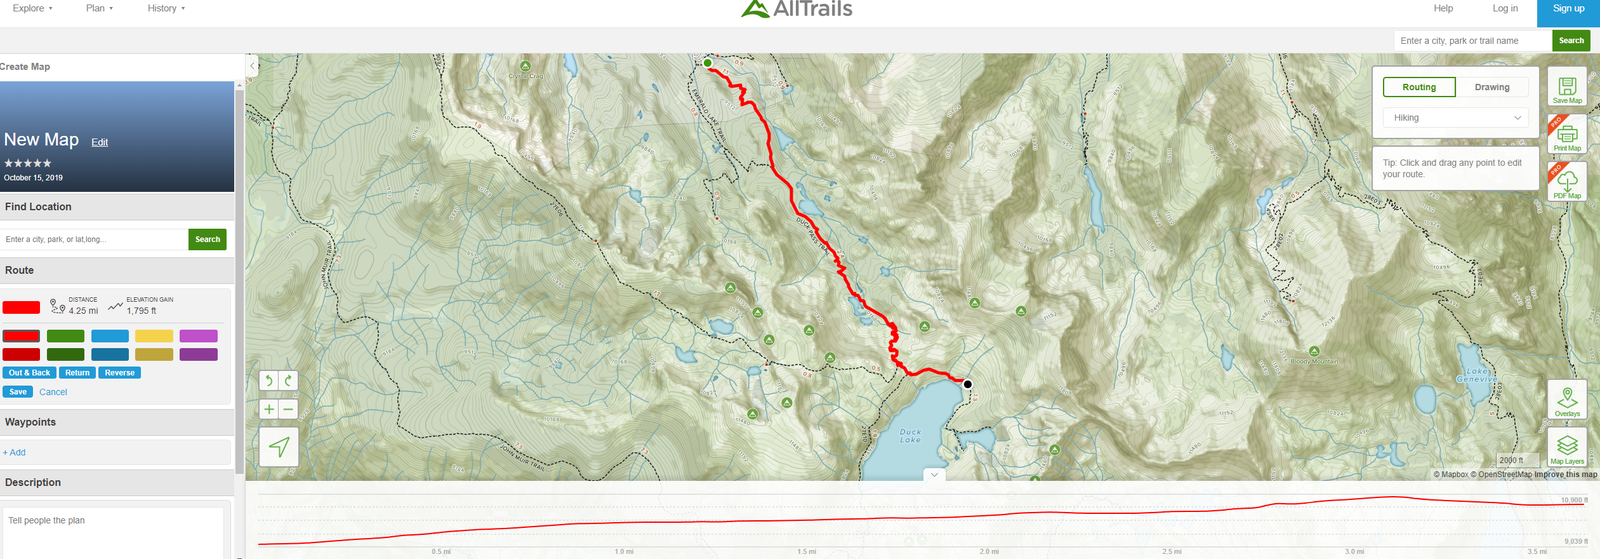 The trail for the day. I have discovered the custom trail feature on the Alltrails website which lets me just draw trails (either as straight lines point to point for a fully custom map or following the already existing routes on the map). This will allow me to accurately portray all of my hikes on this trip.